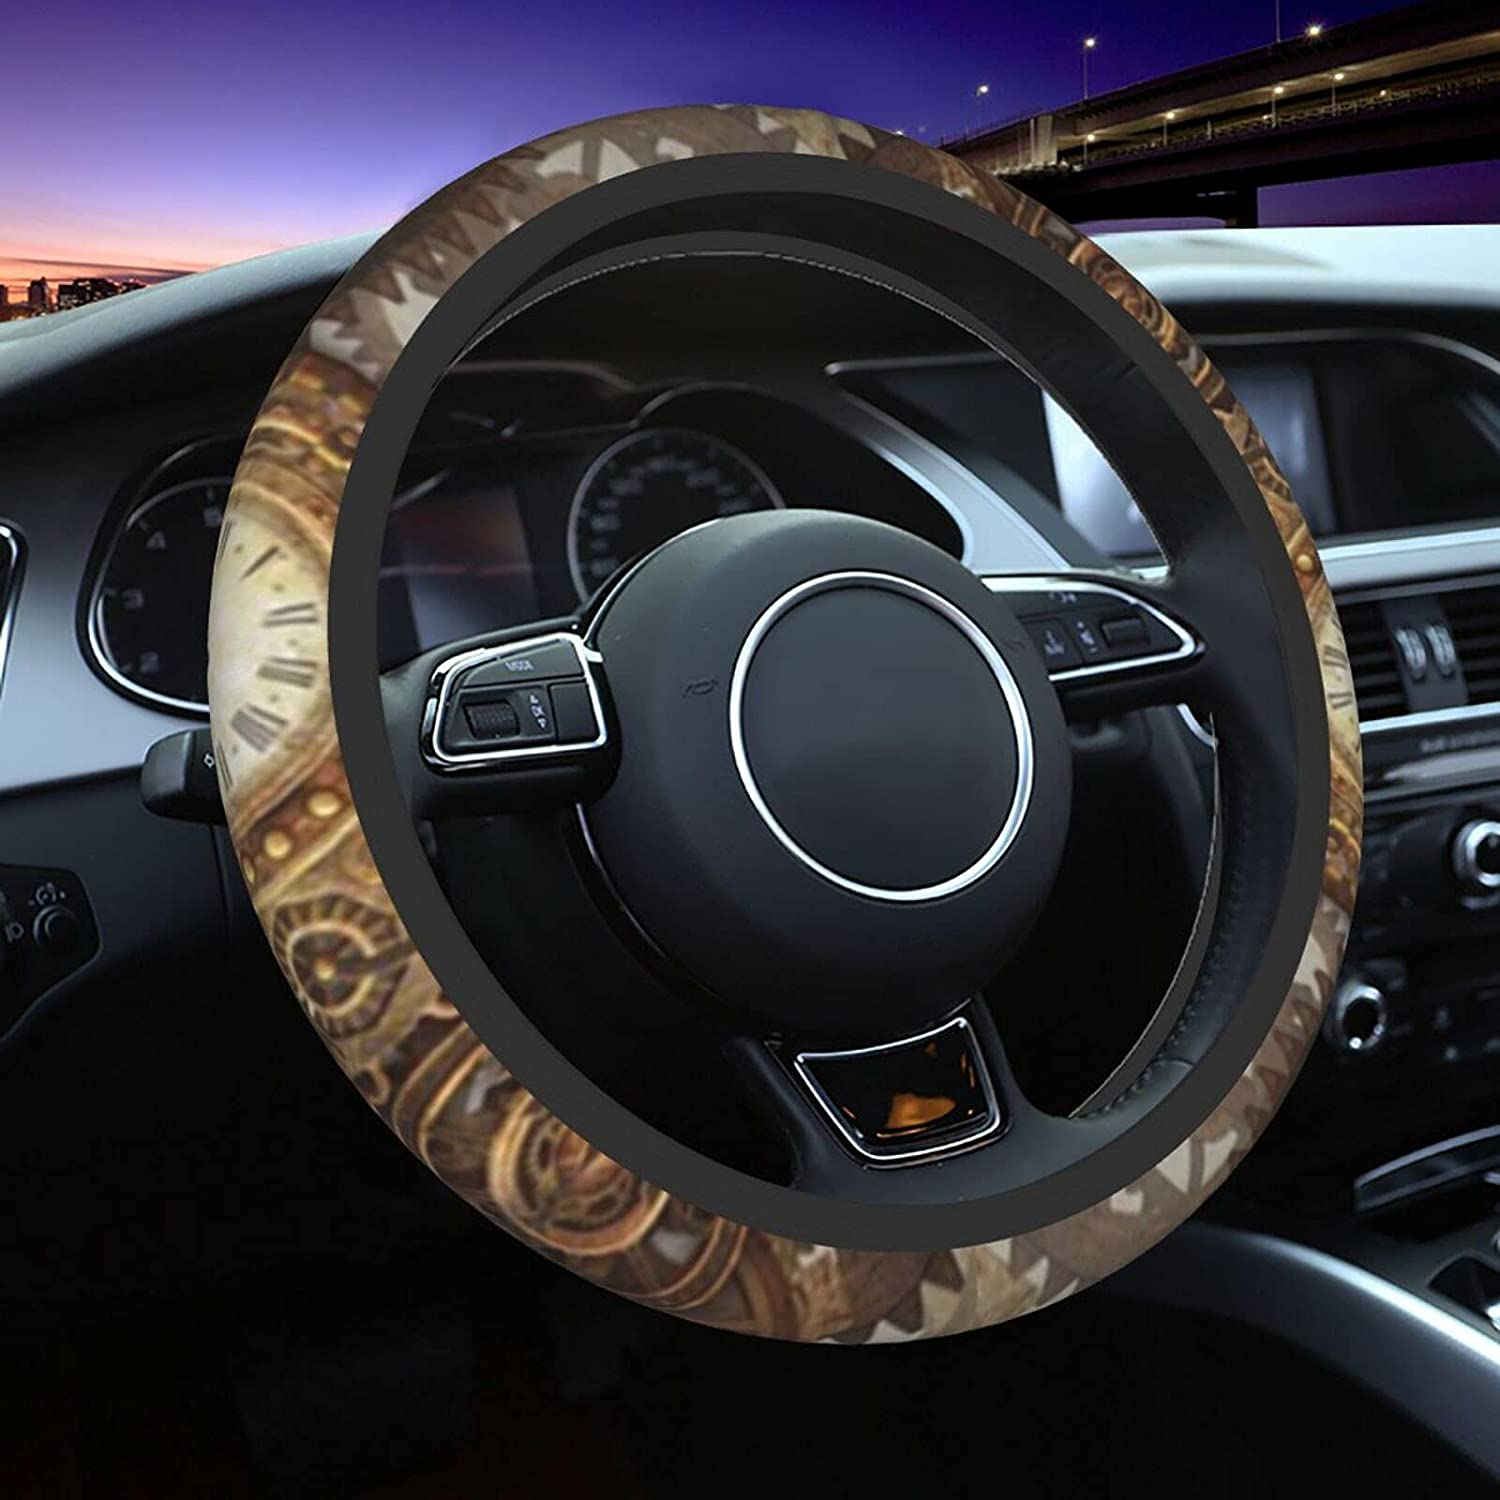 All stores are sold Steering security Wheel Covers for Abstract Steampunk Background Car